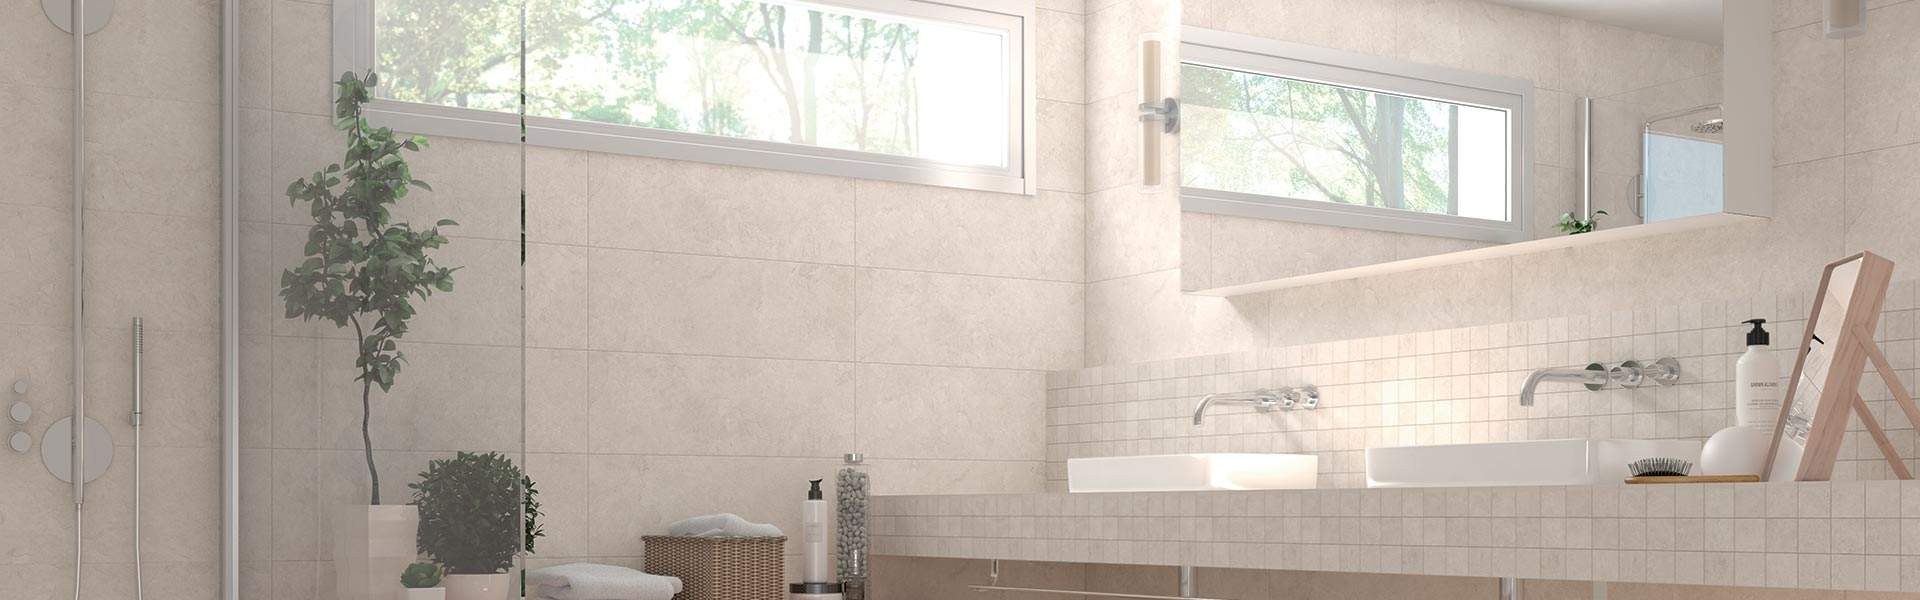 Cement Effect Wall Tiles from Tiles.ie Dublin